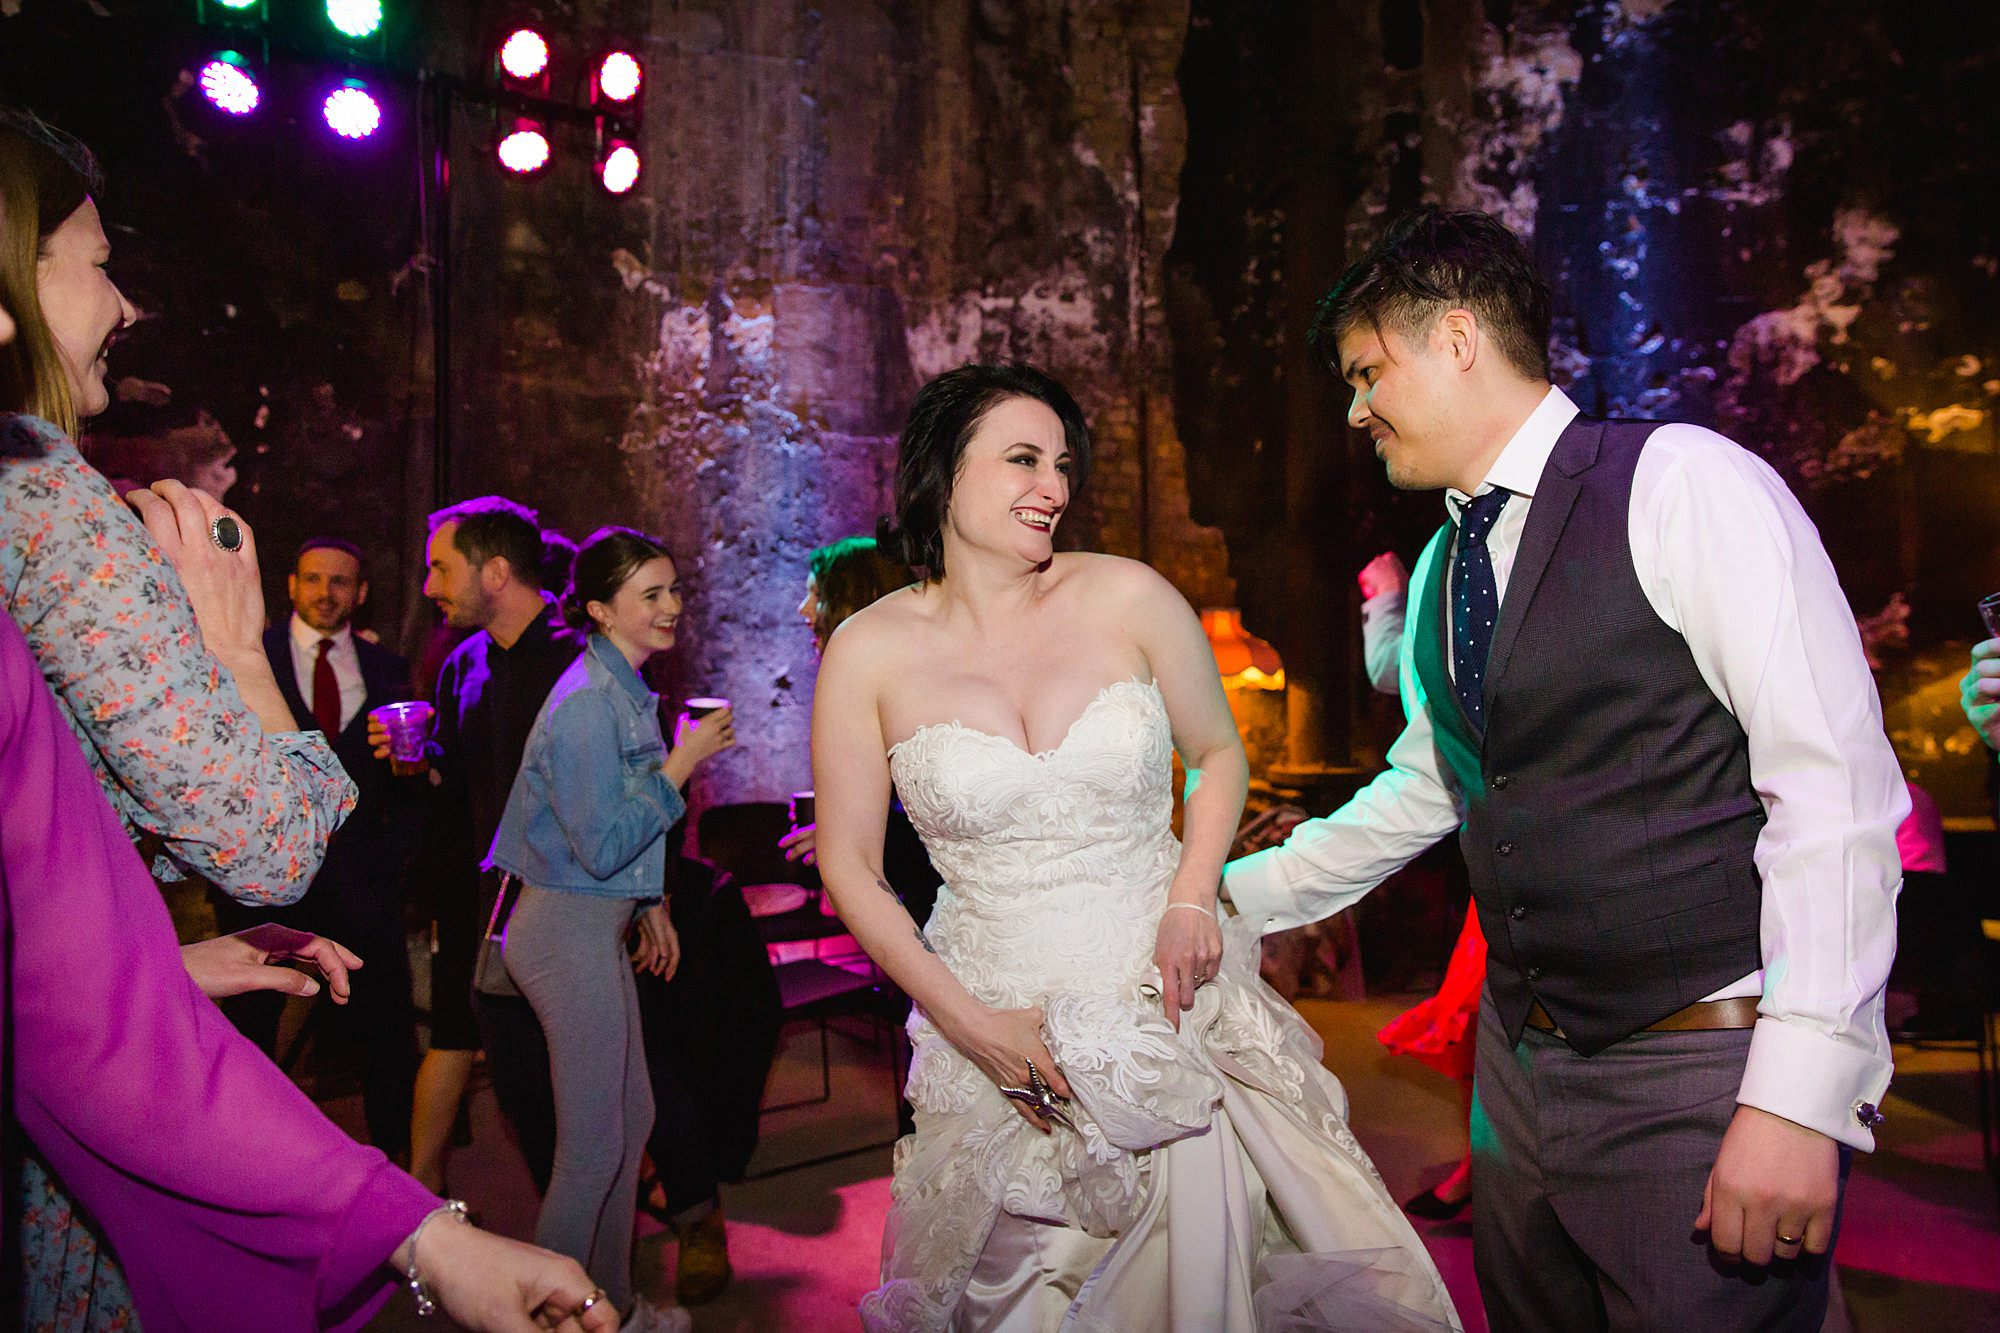 Brunel museum wedding bride and groom dance and laugh together